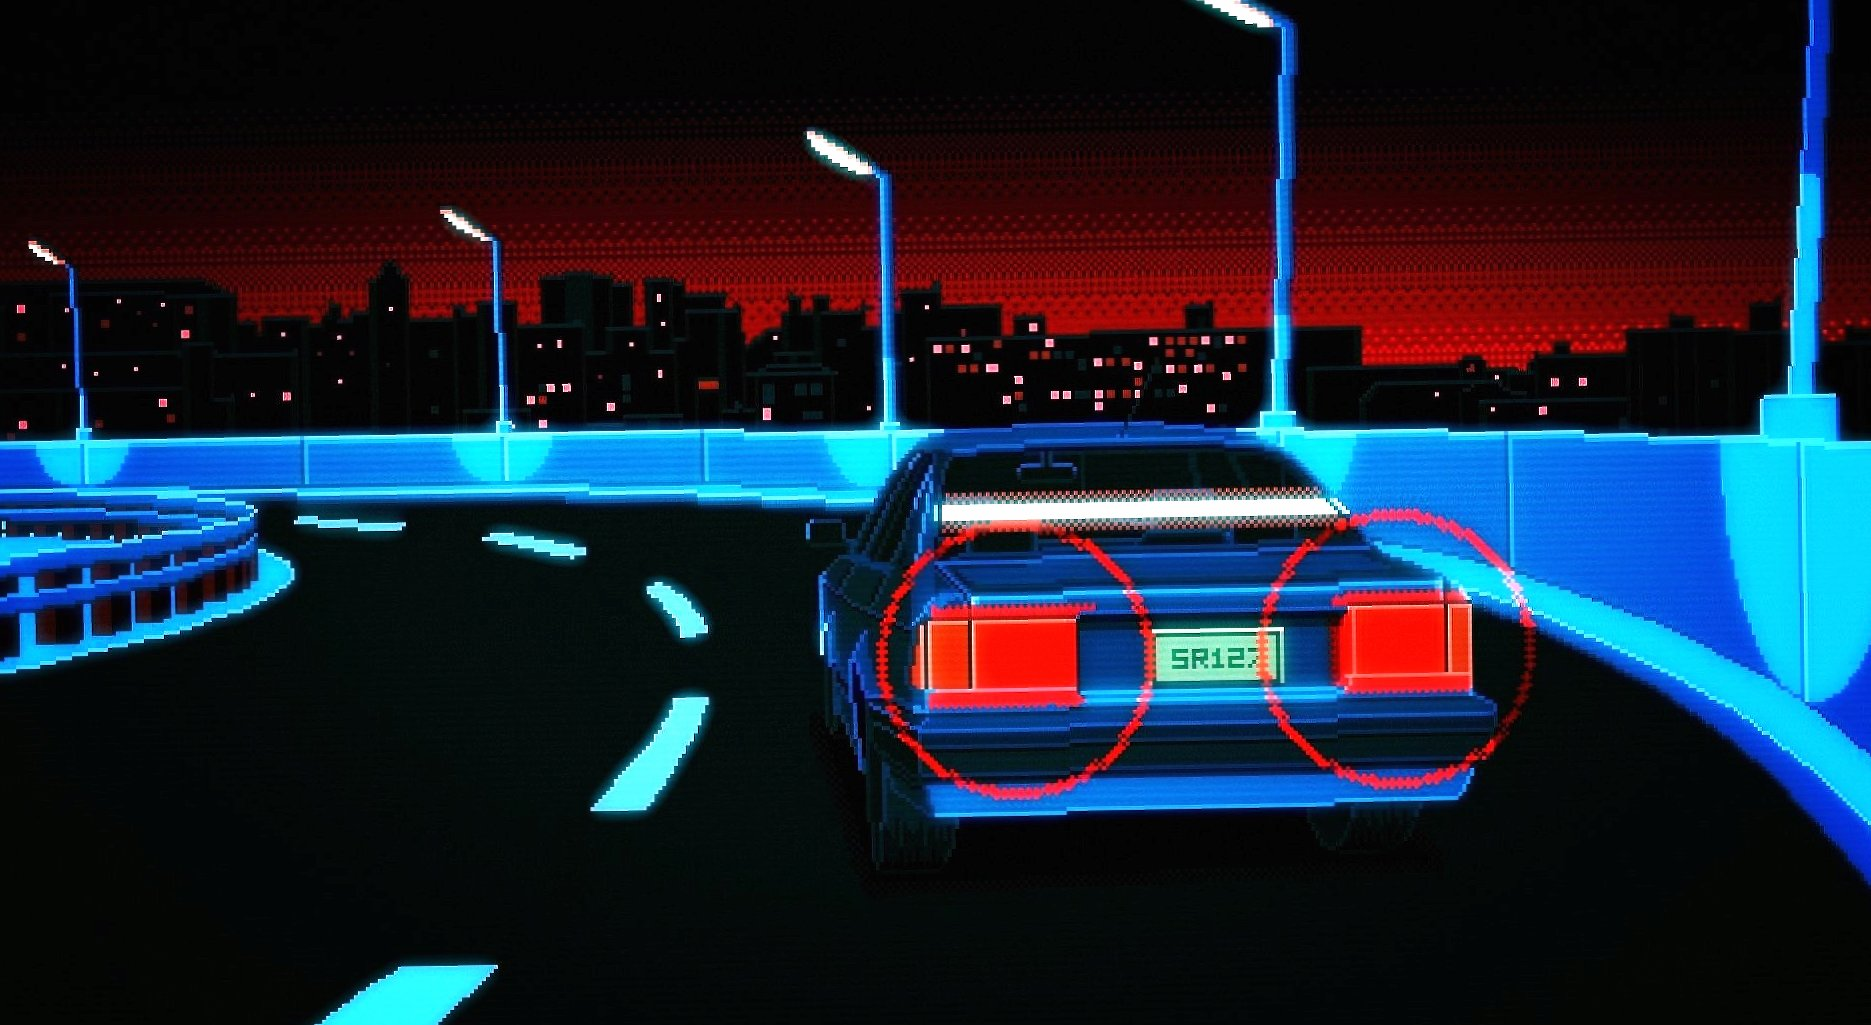 Retro at 640 x 960 iPhone 4 size wallpapers HD quality